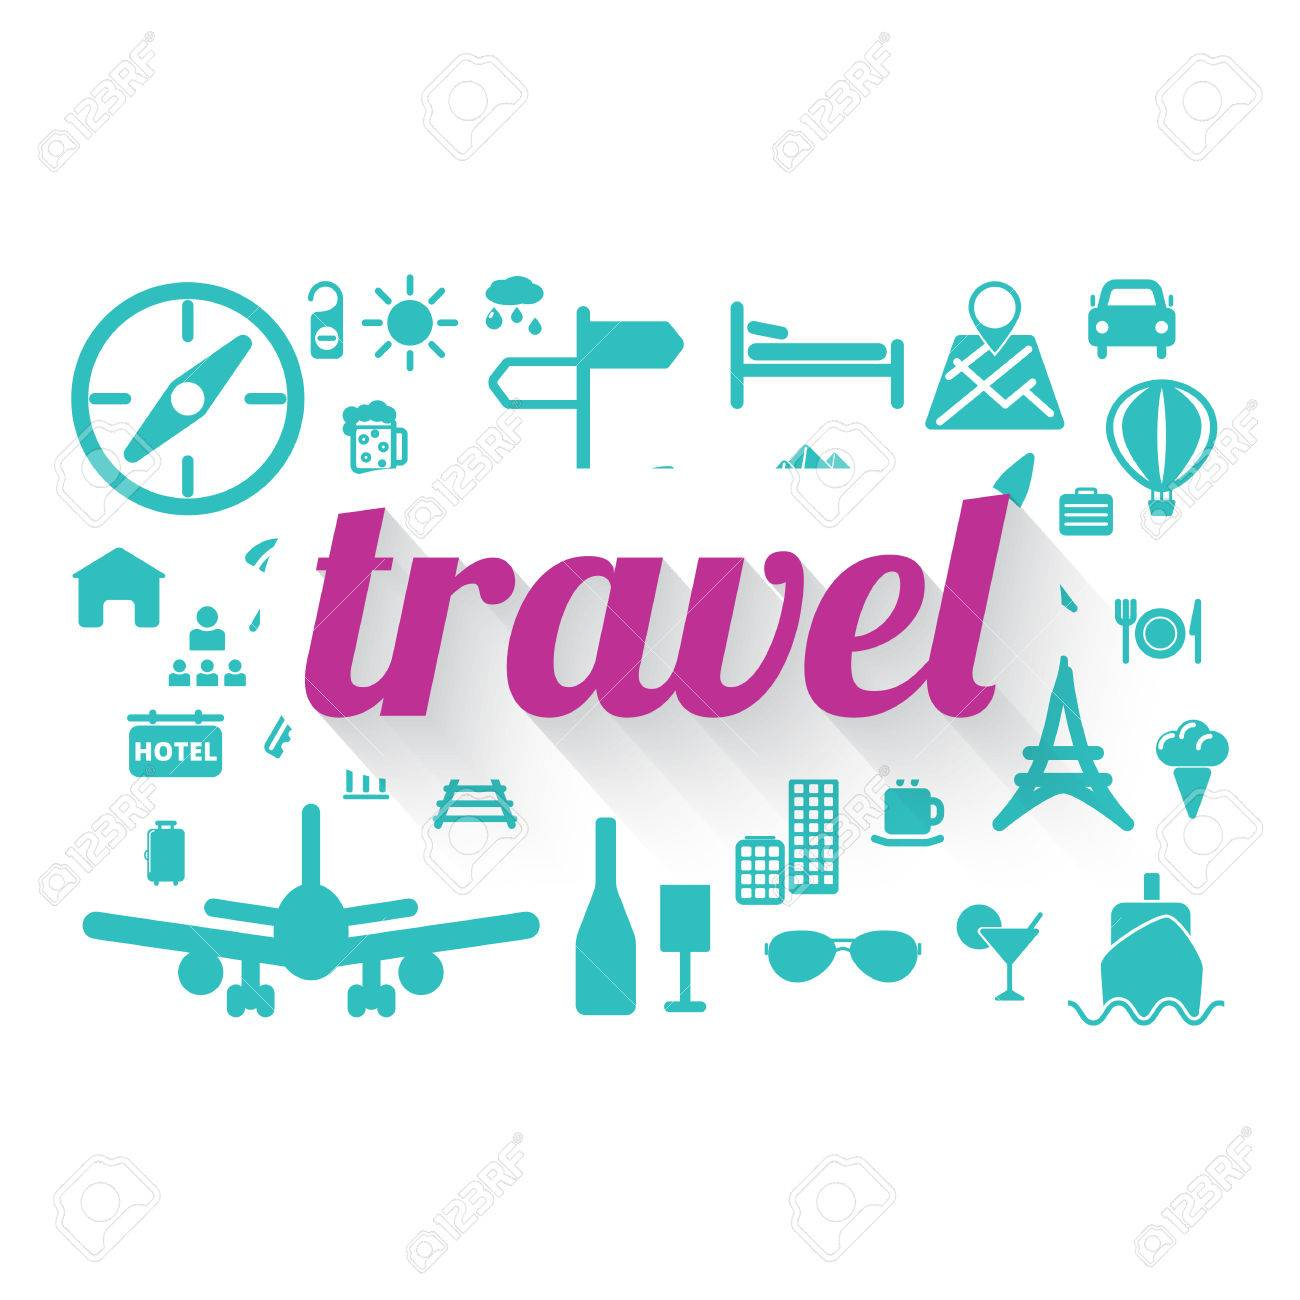 Travel Word Cloud Concept Stock Vector